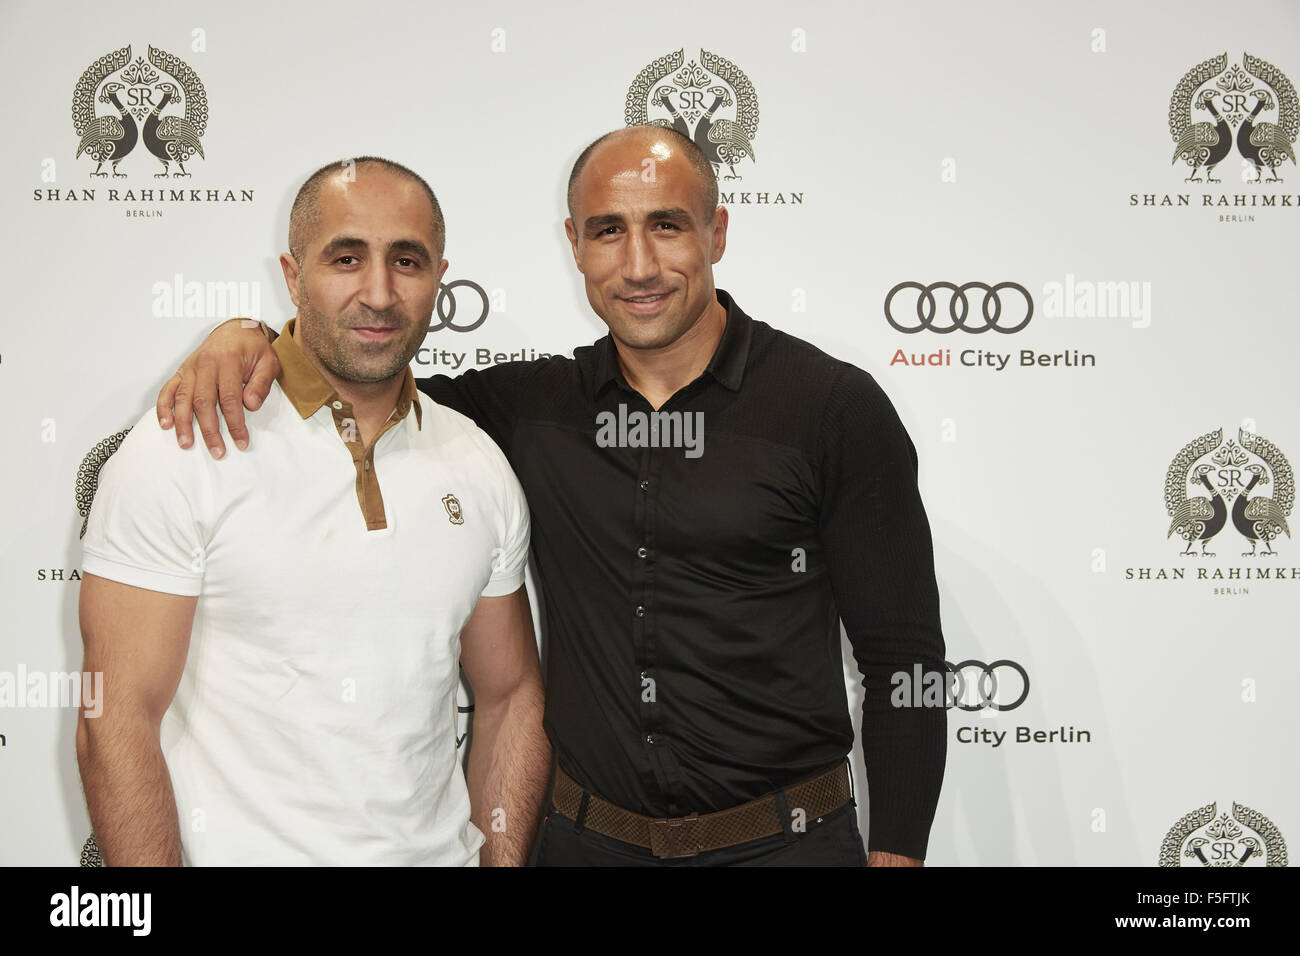 Shan Rahimkhan Berlin Red Carpet For True Berlin 3 By Shan Rahimkhan Party Featuring: Alex Stock Photo - Alamy